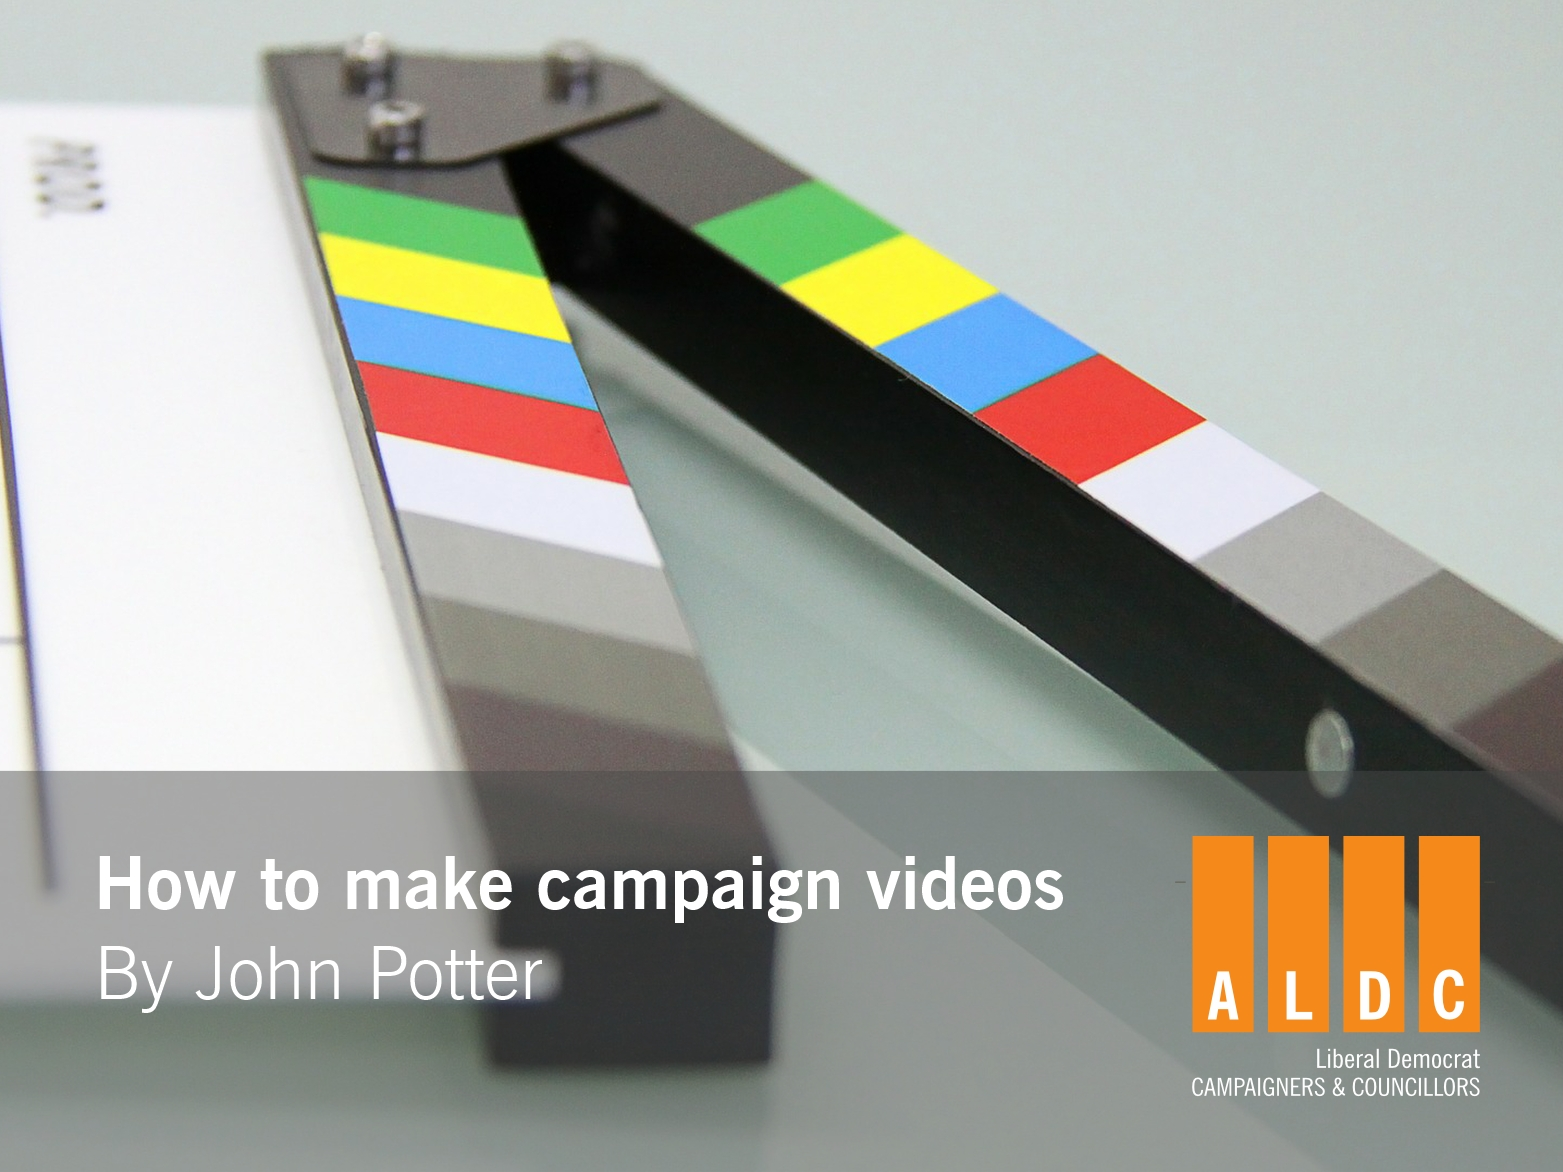 John Potter: How to make campaign videos